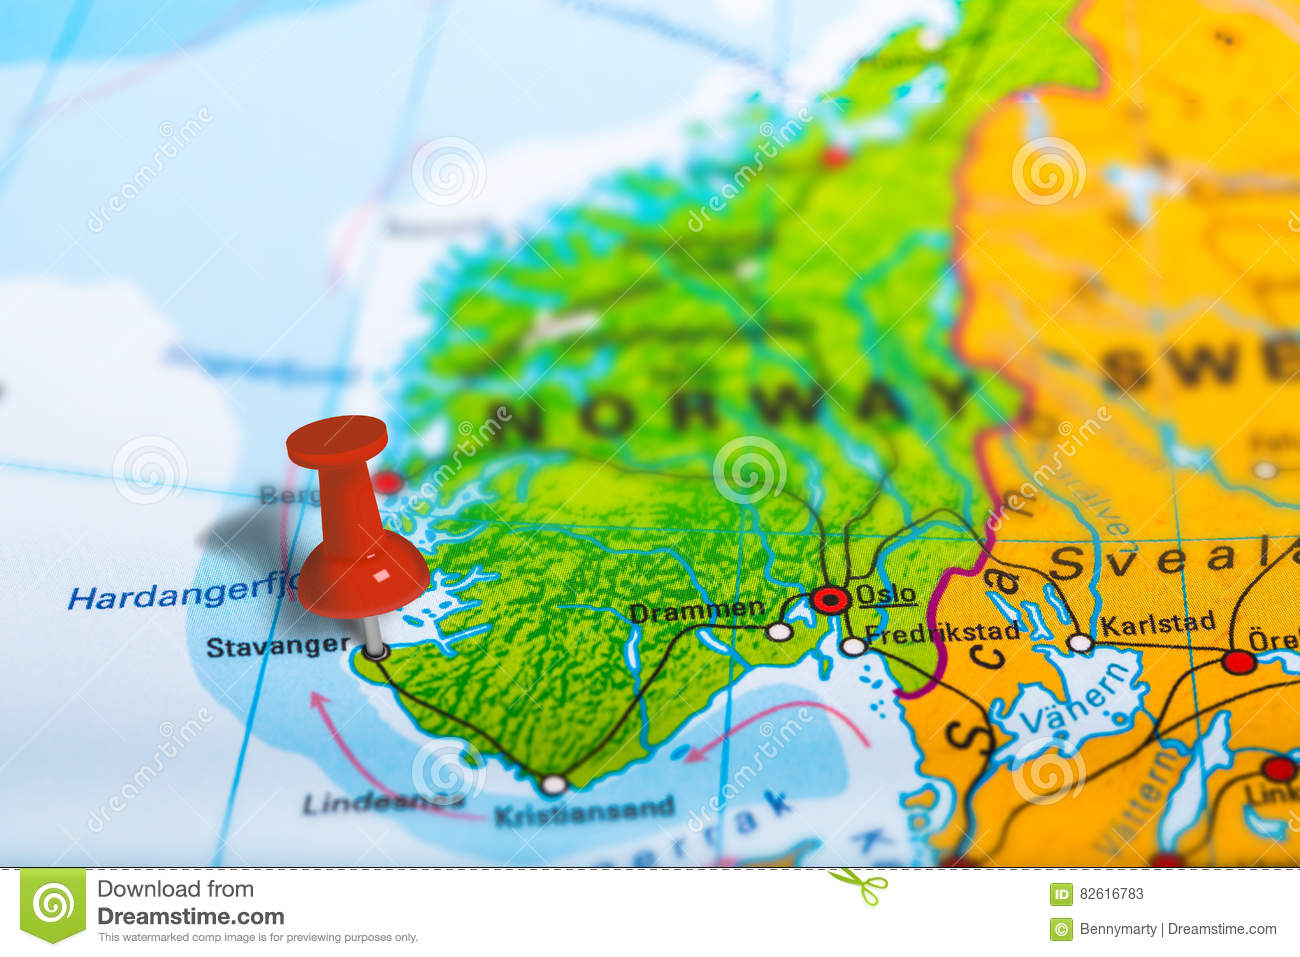 Stavanger Norway Map Stock Photo Image - Norway map